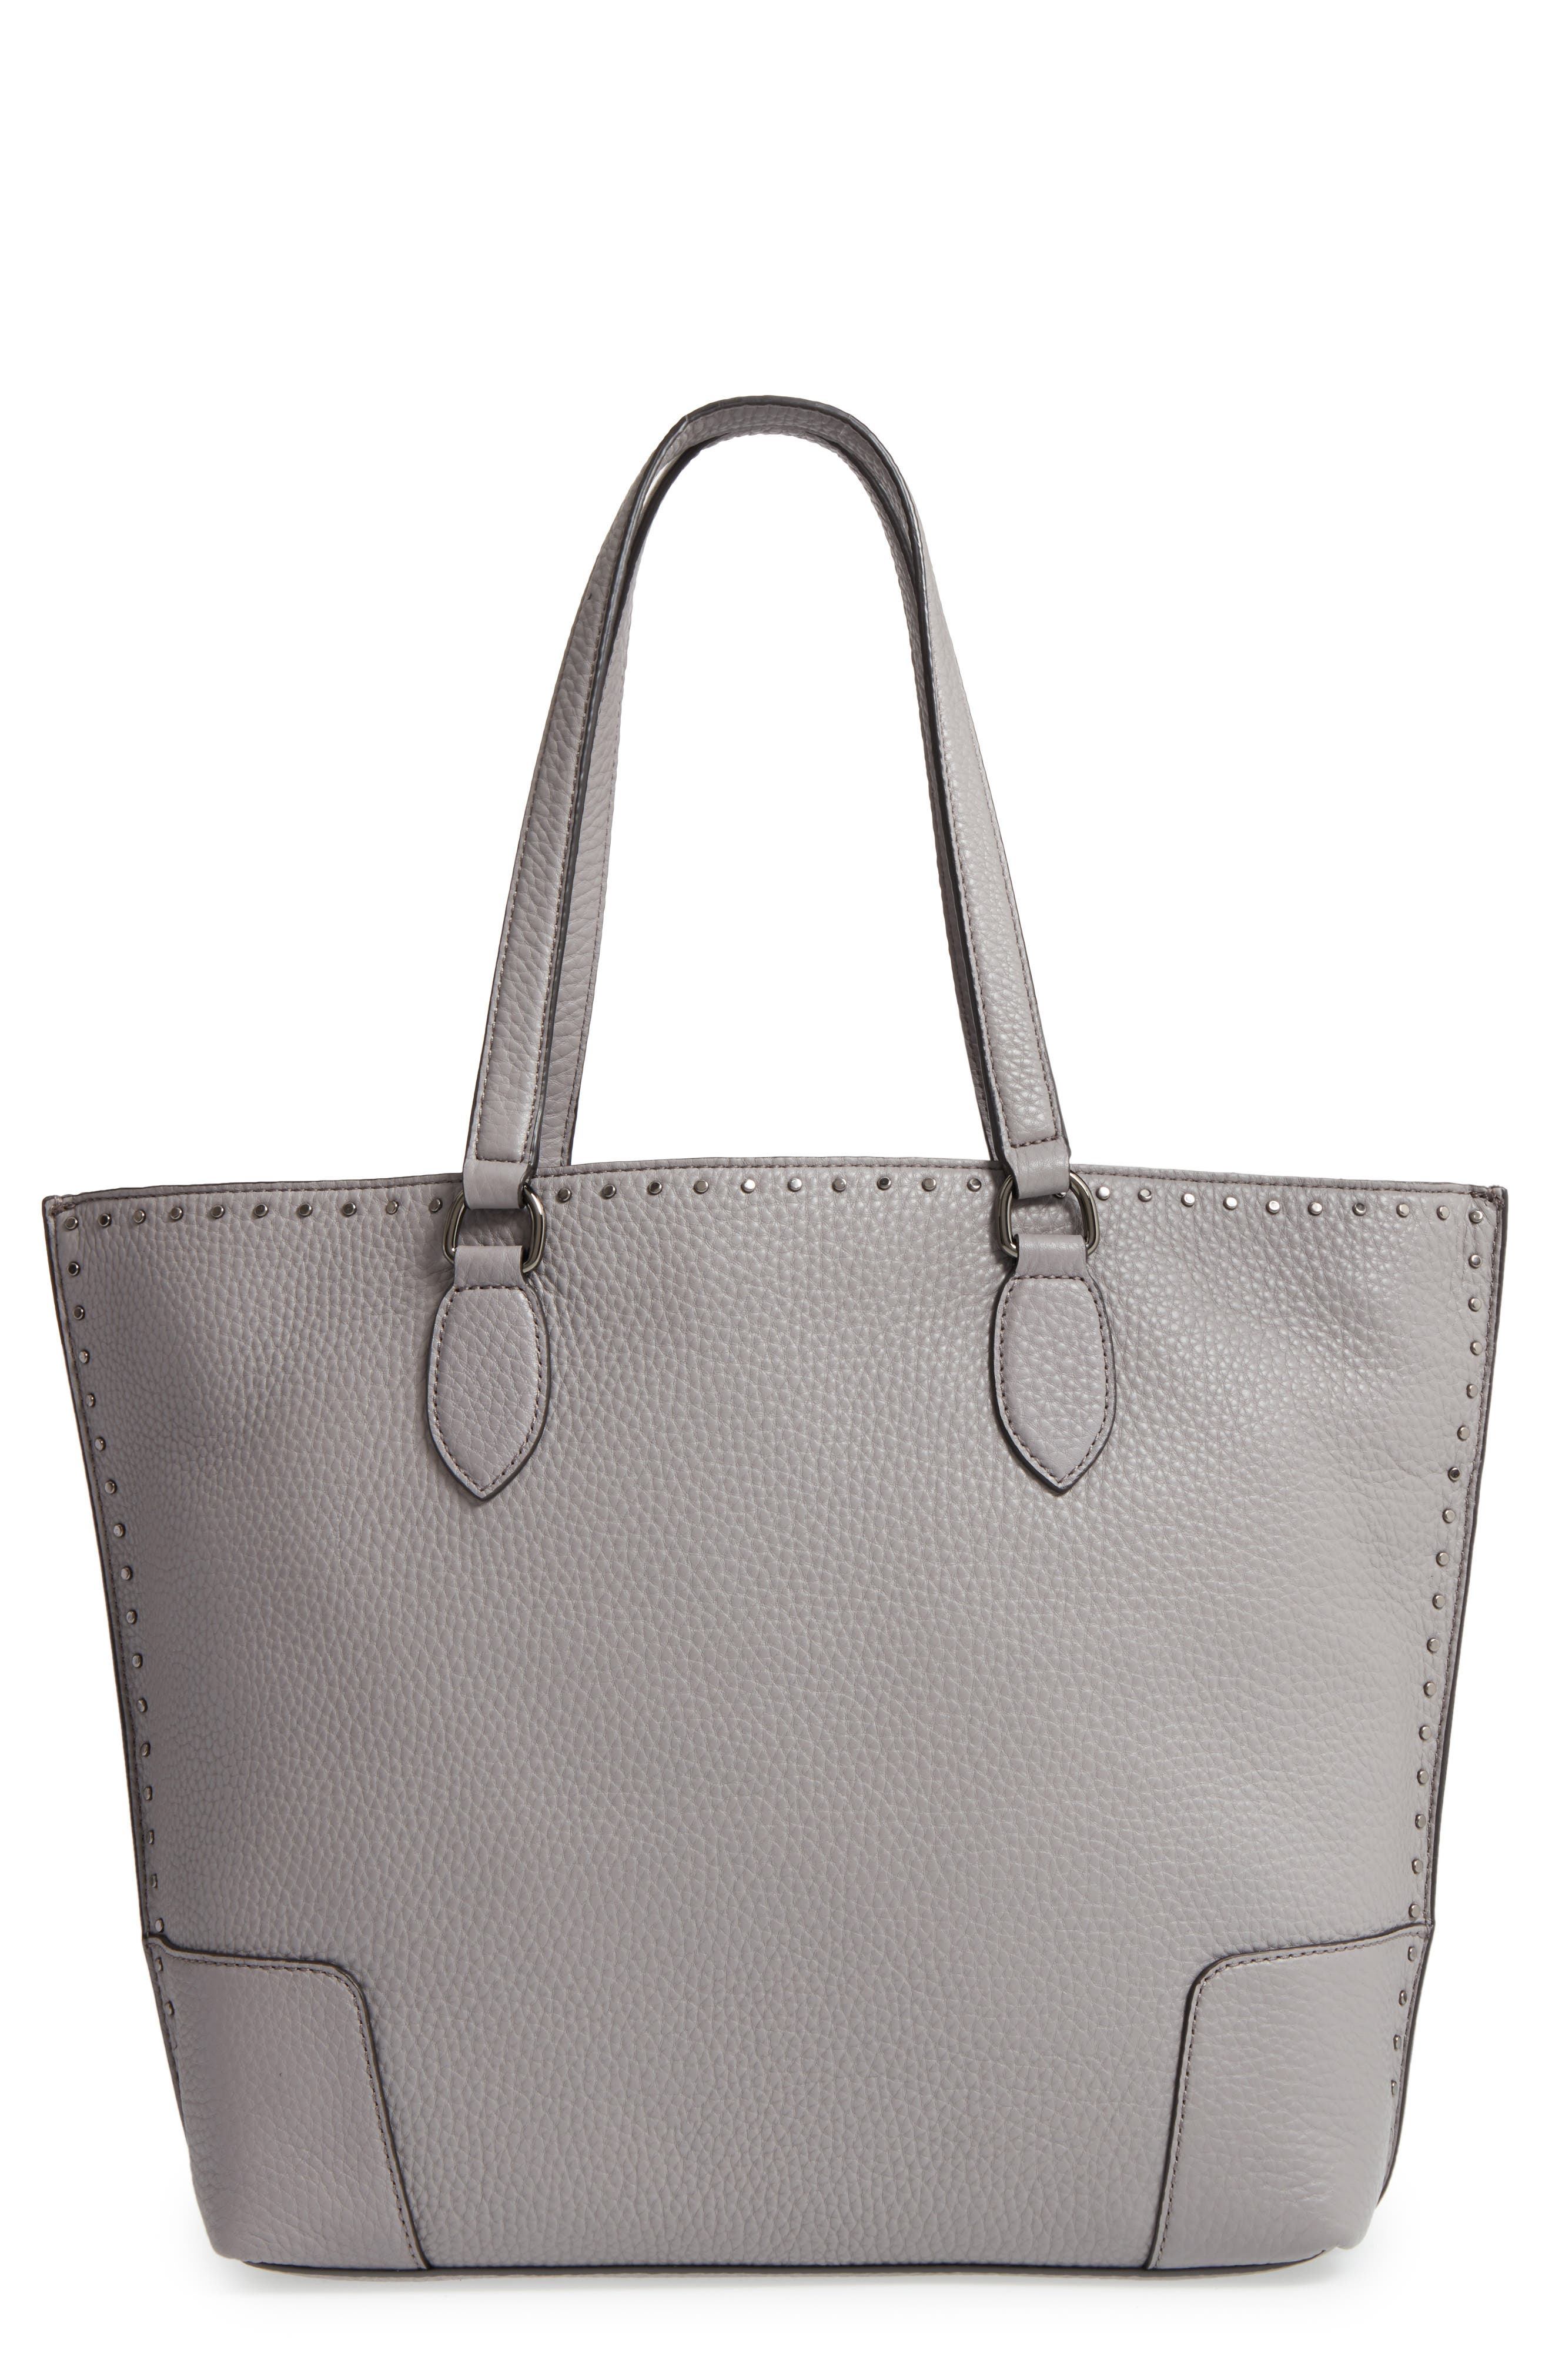 Main Image - Rebecca Minkoff Moonwalking Leather Tote